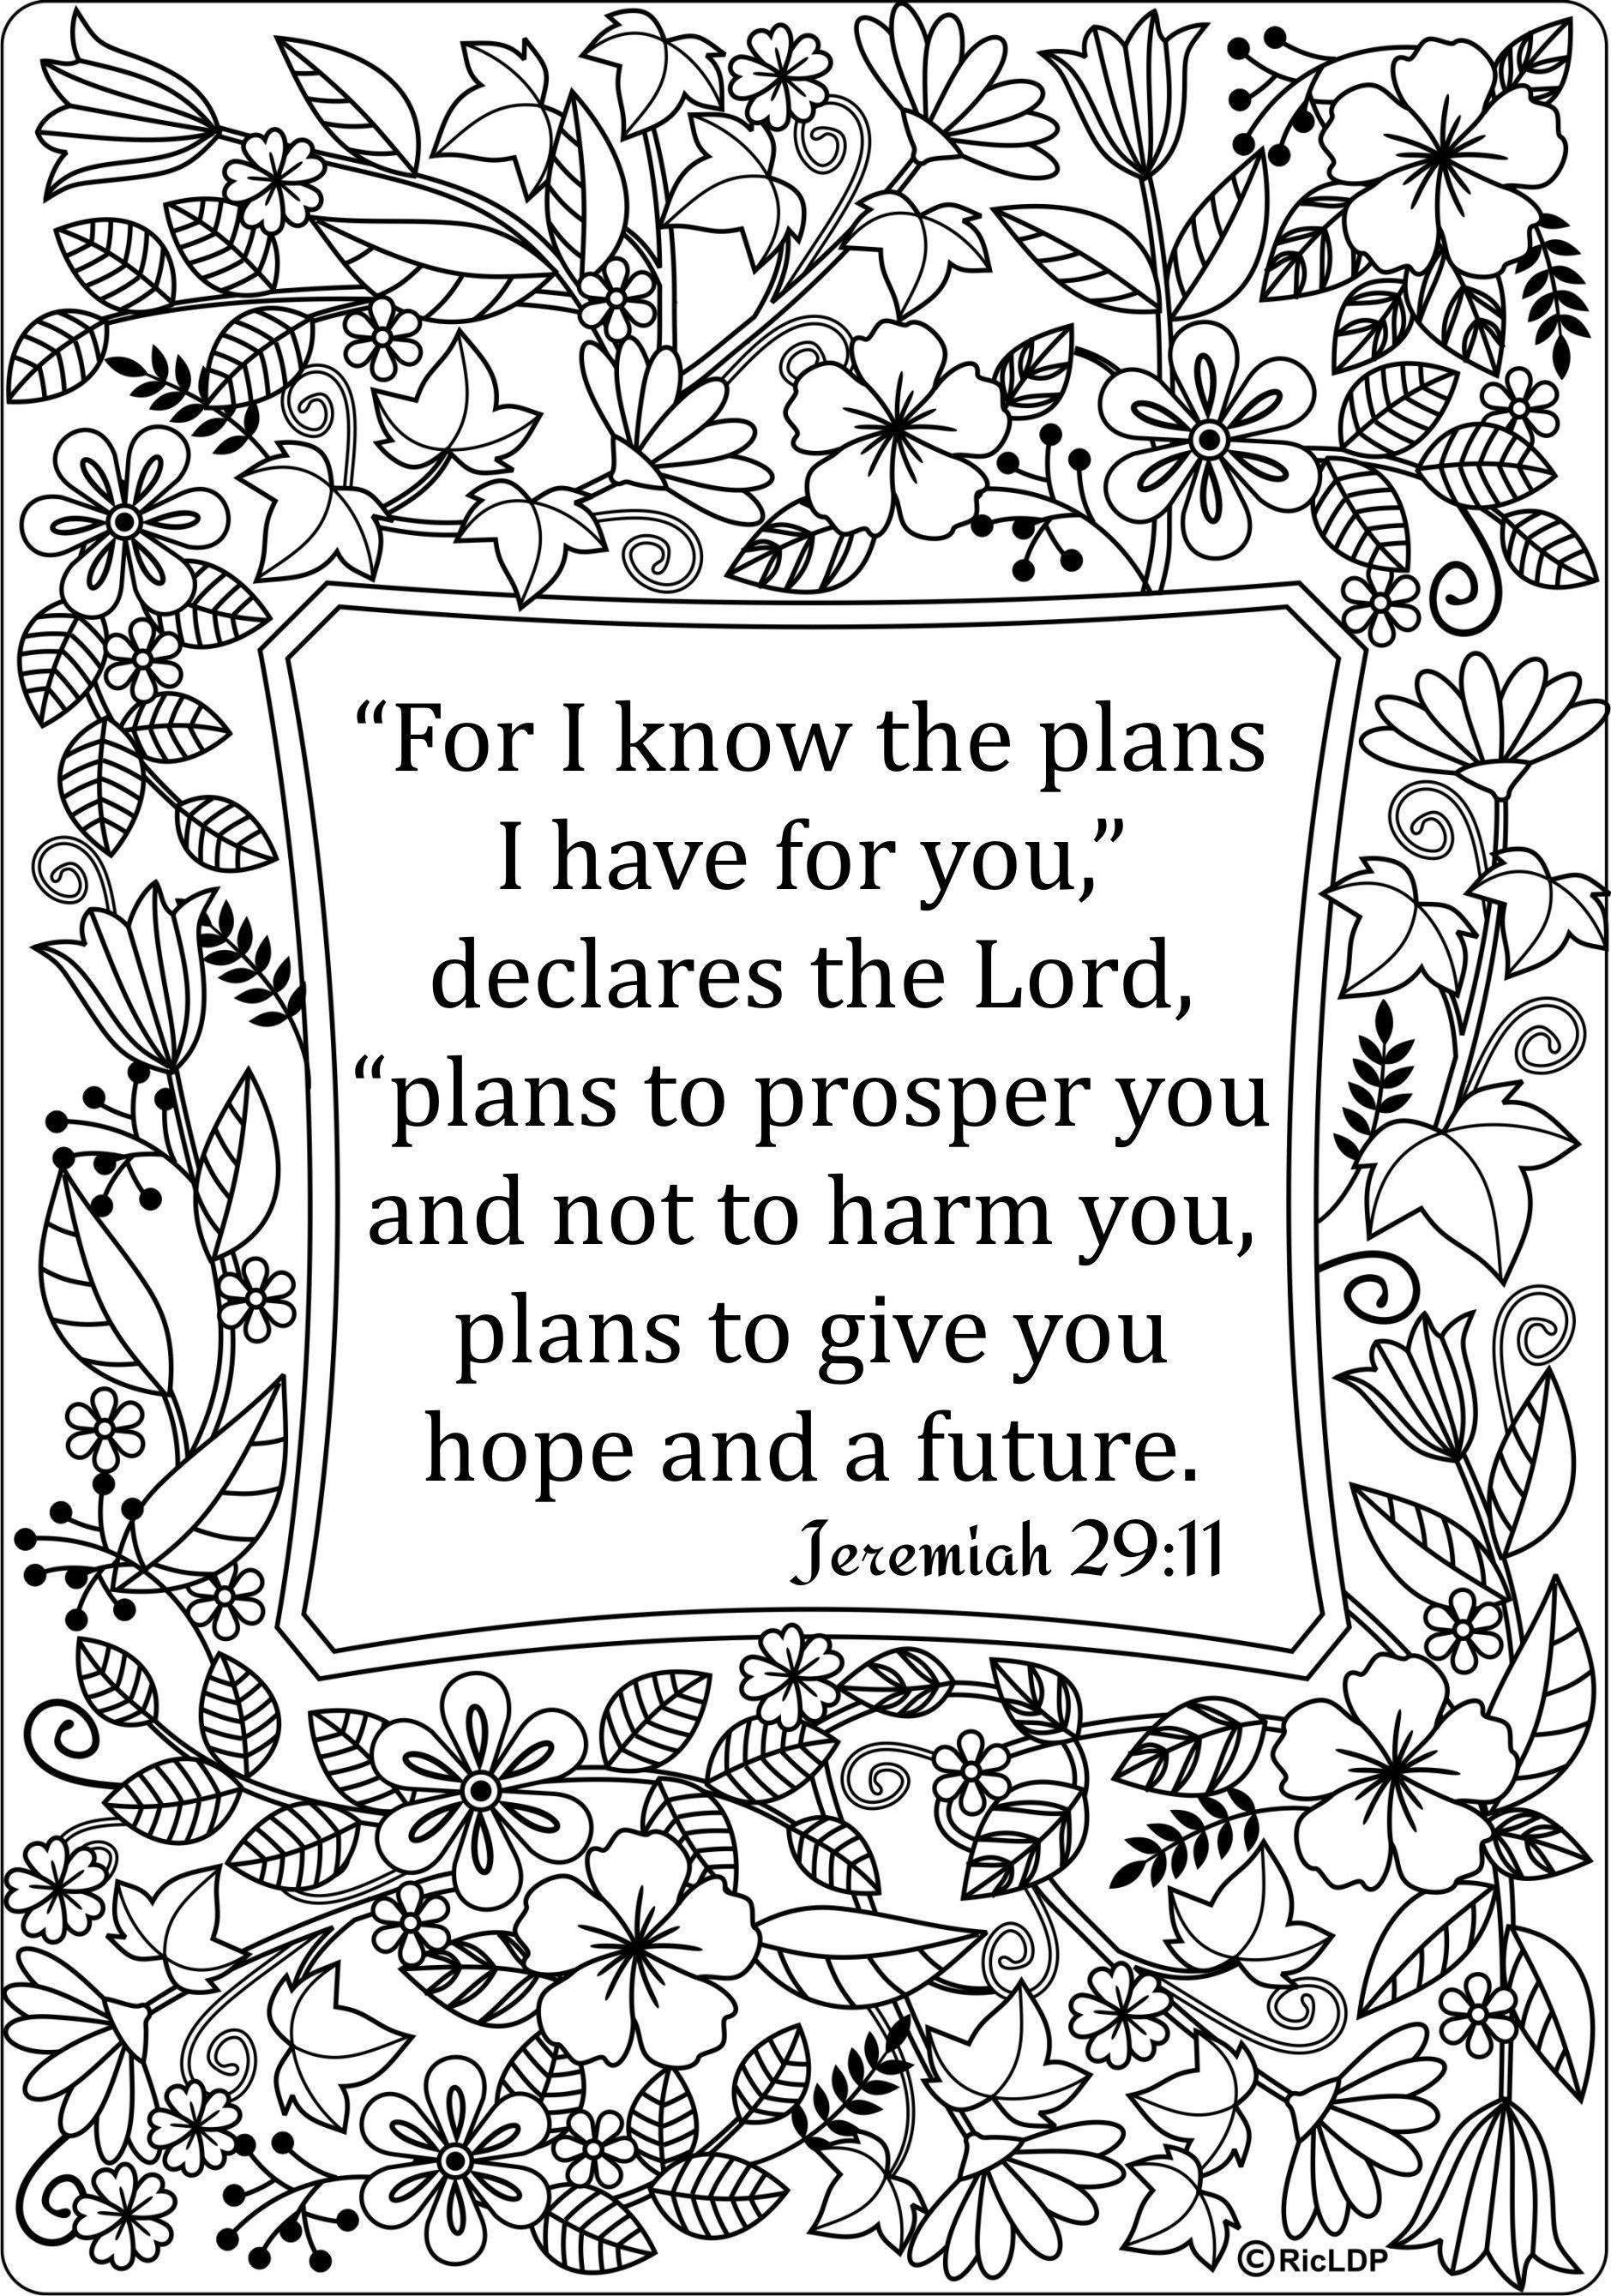 8 Coloring Page Jeremiah 29 11 Bible Coloring Pages Bible Verse Coloring Page Scripture Coloring